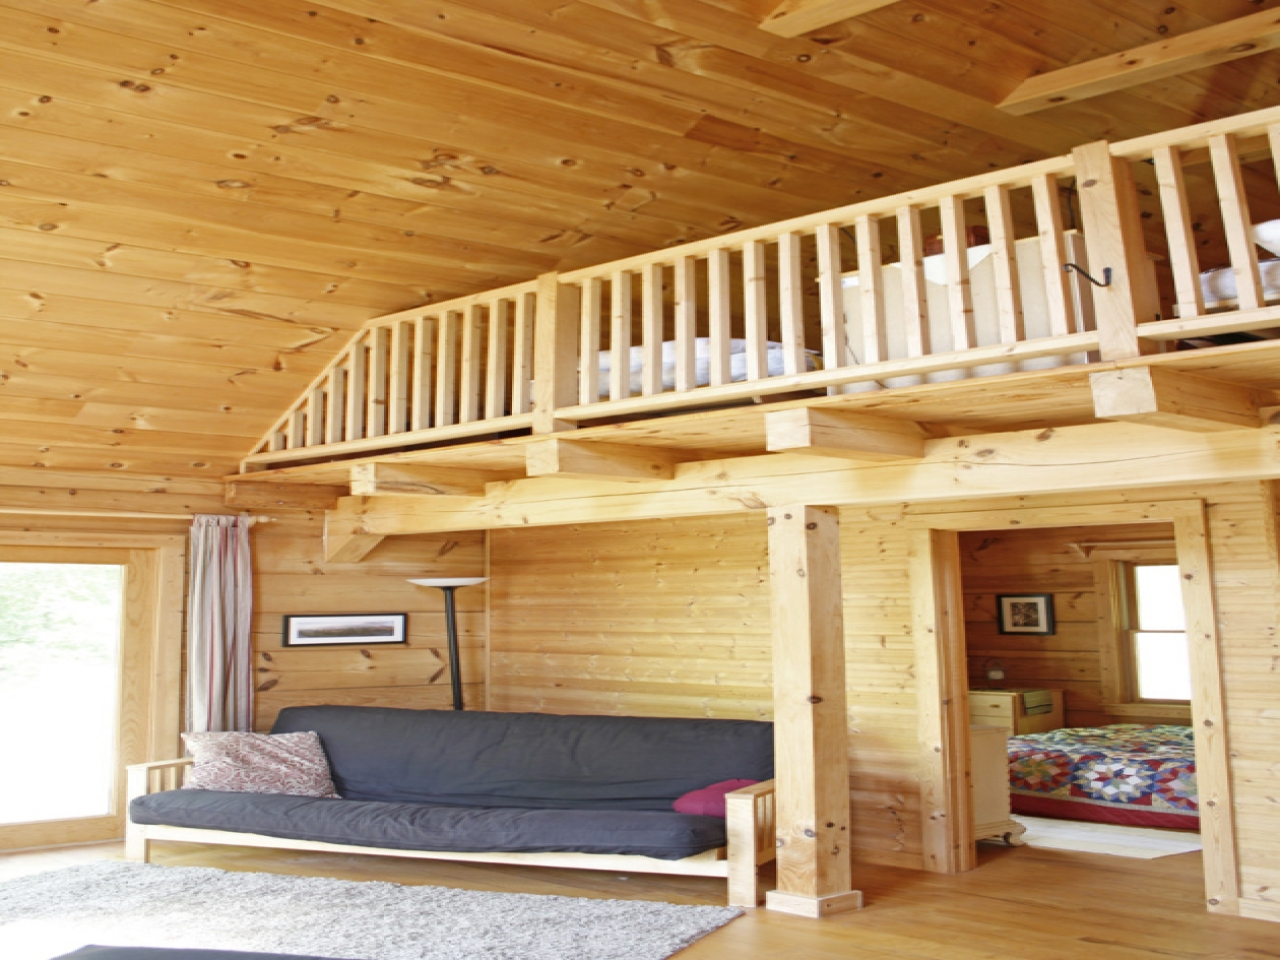 Cabin Plans Under 800 Sq FT Inexpensive Small Cabin Plans ...